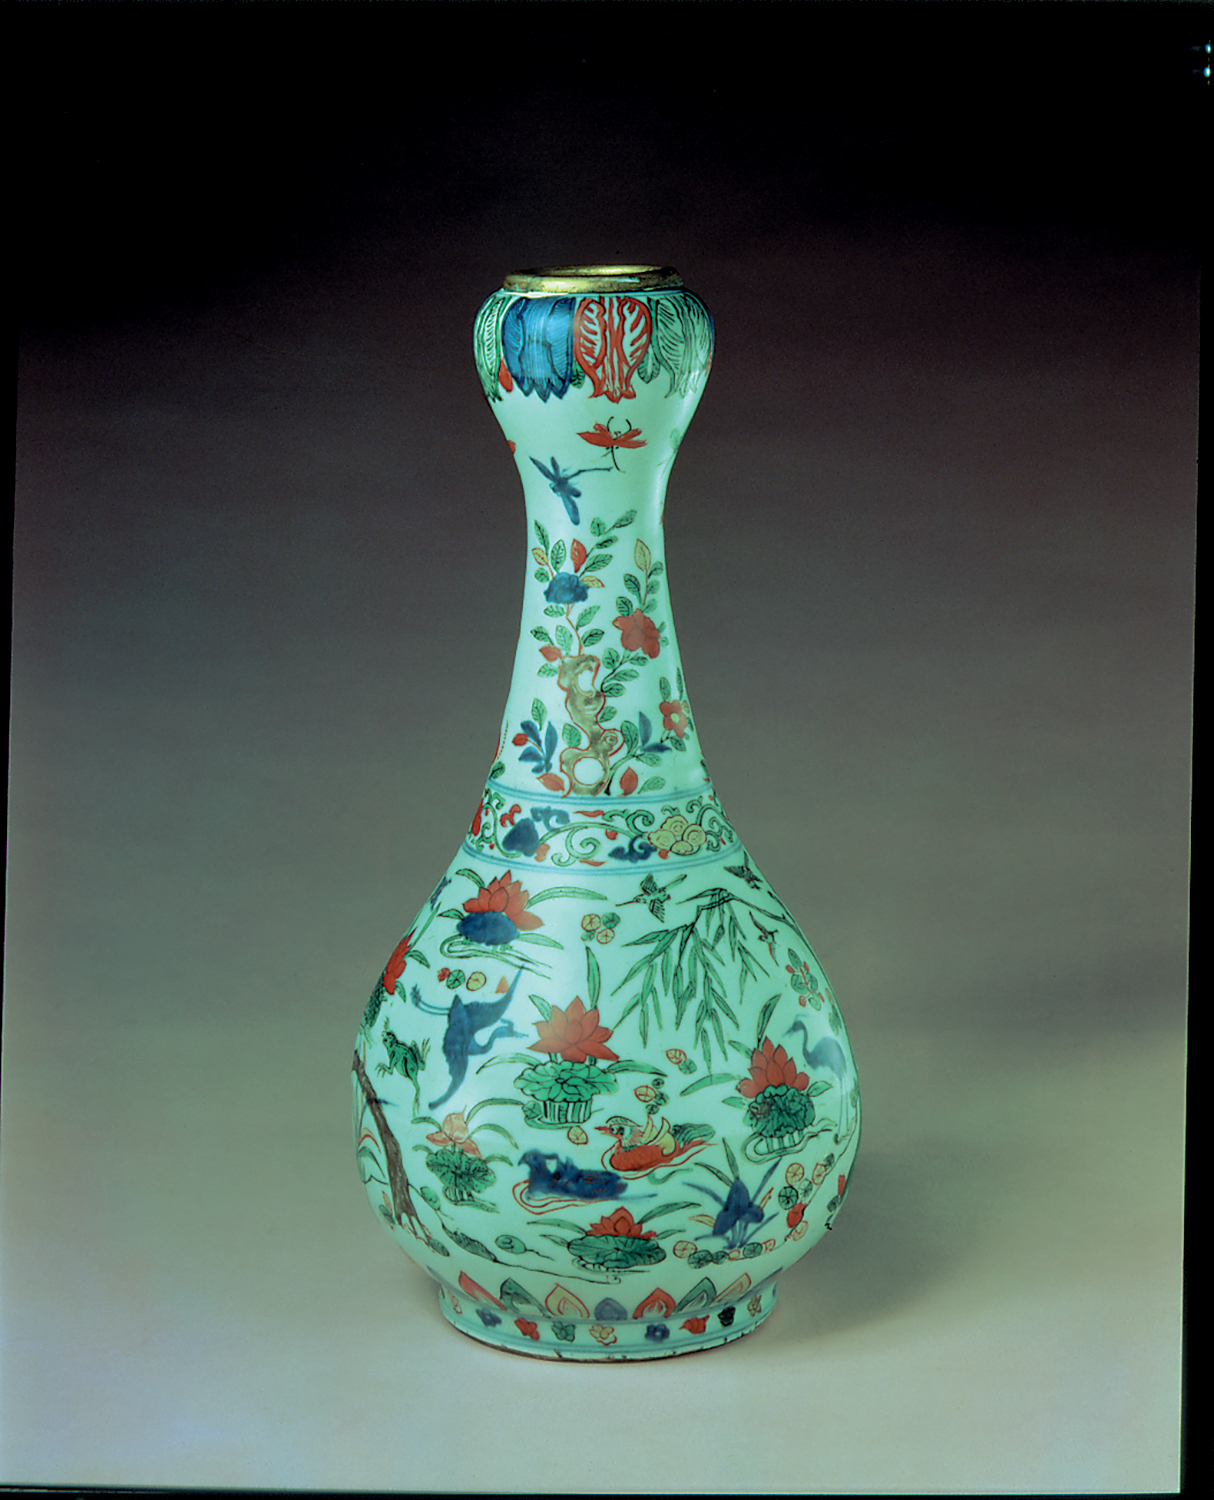 A porcelain vase with a round base and a skinny neck. Colorful flowers and designs are on the vase.